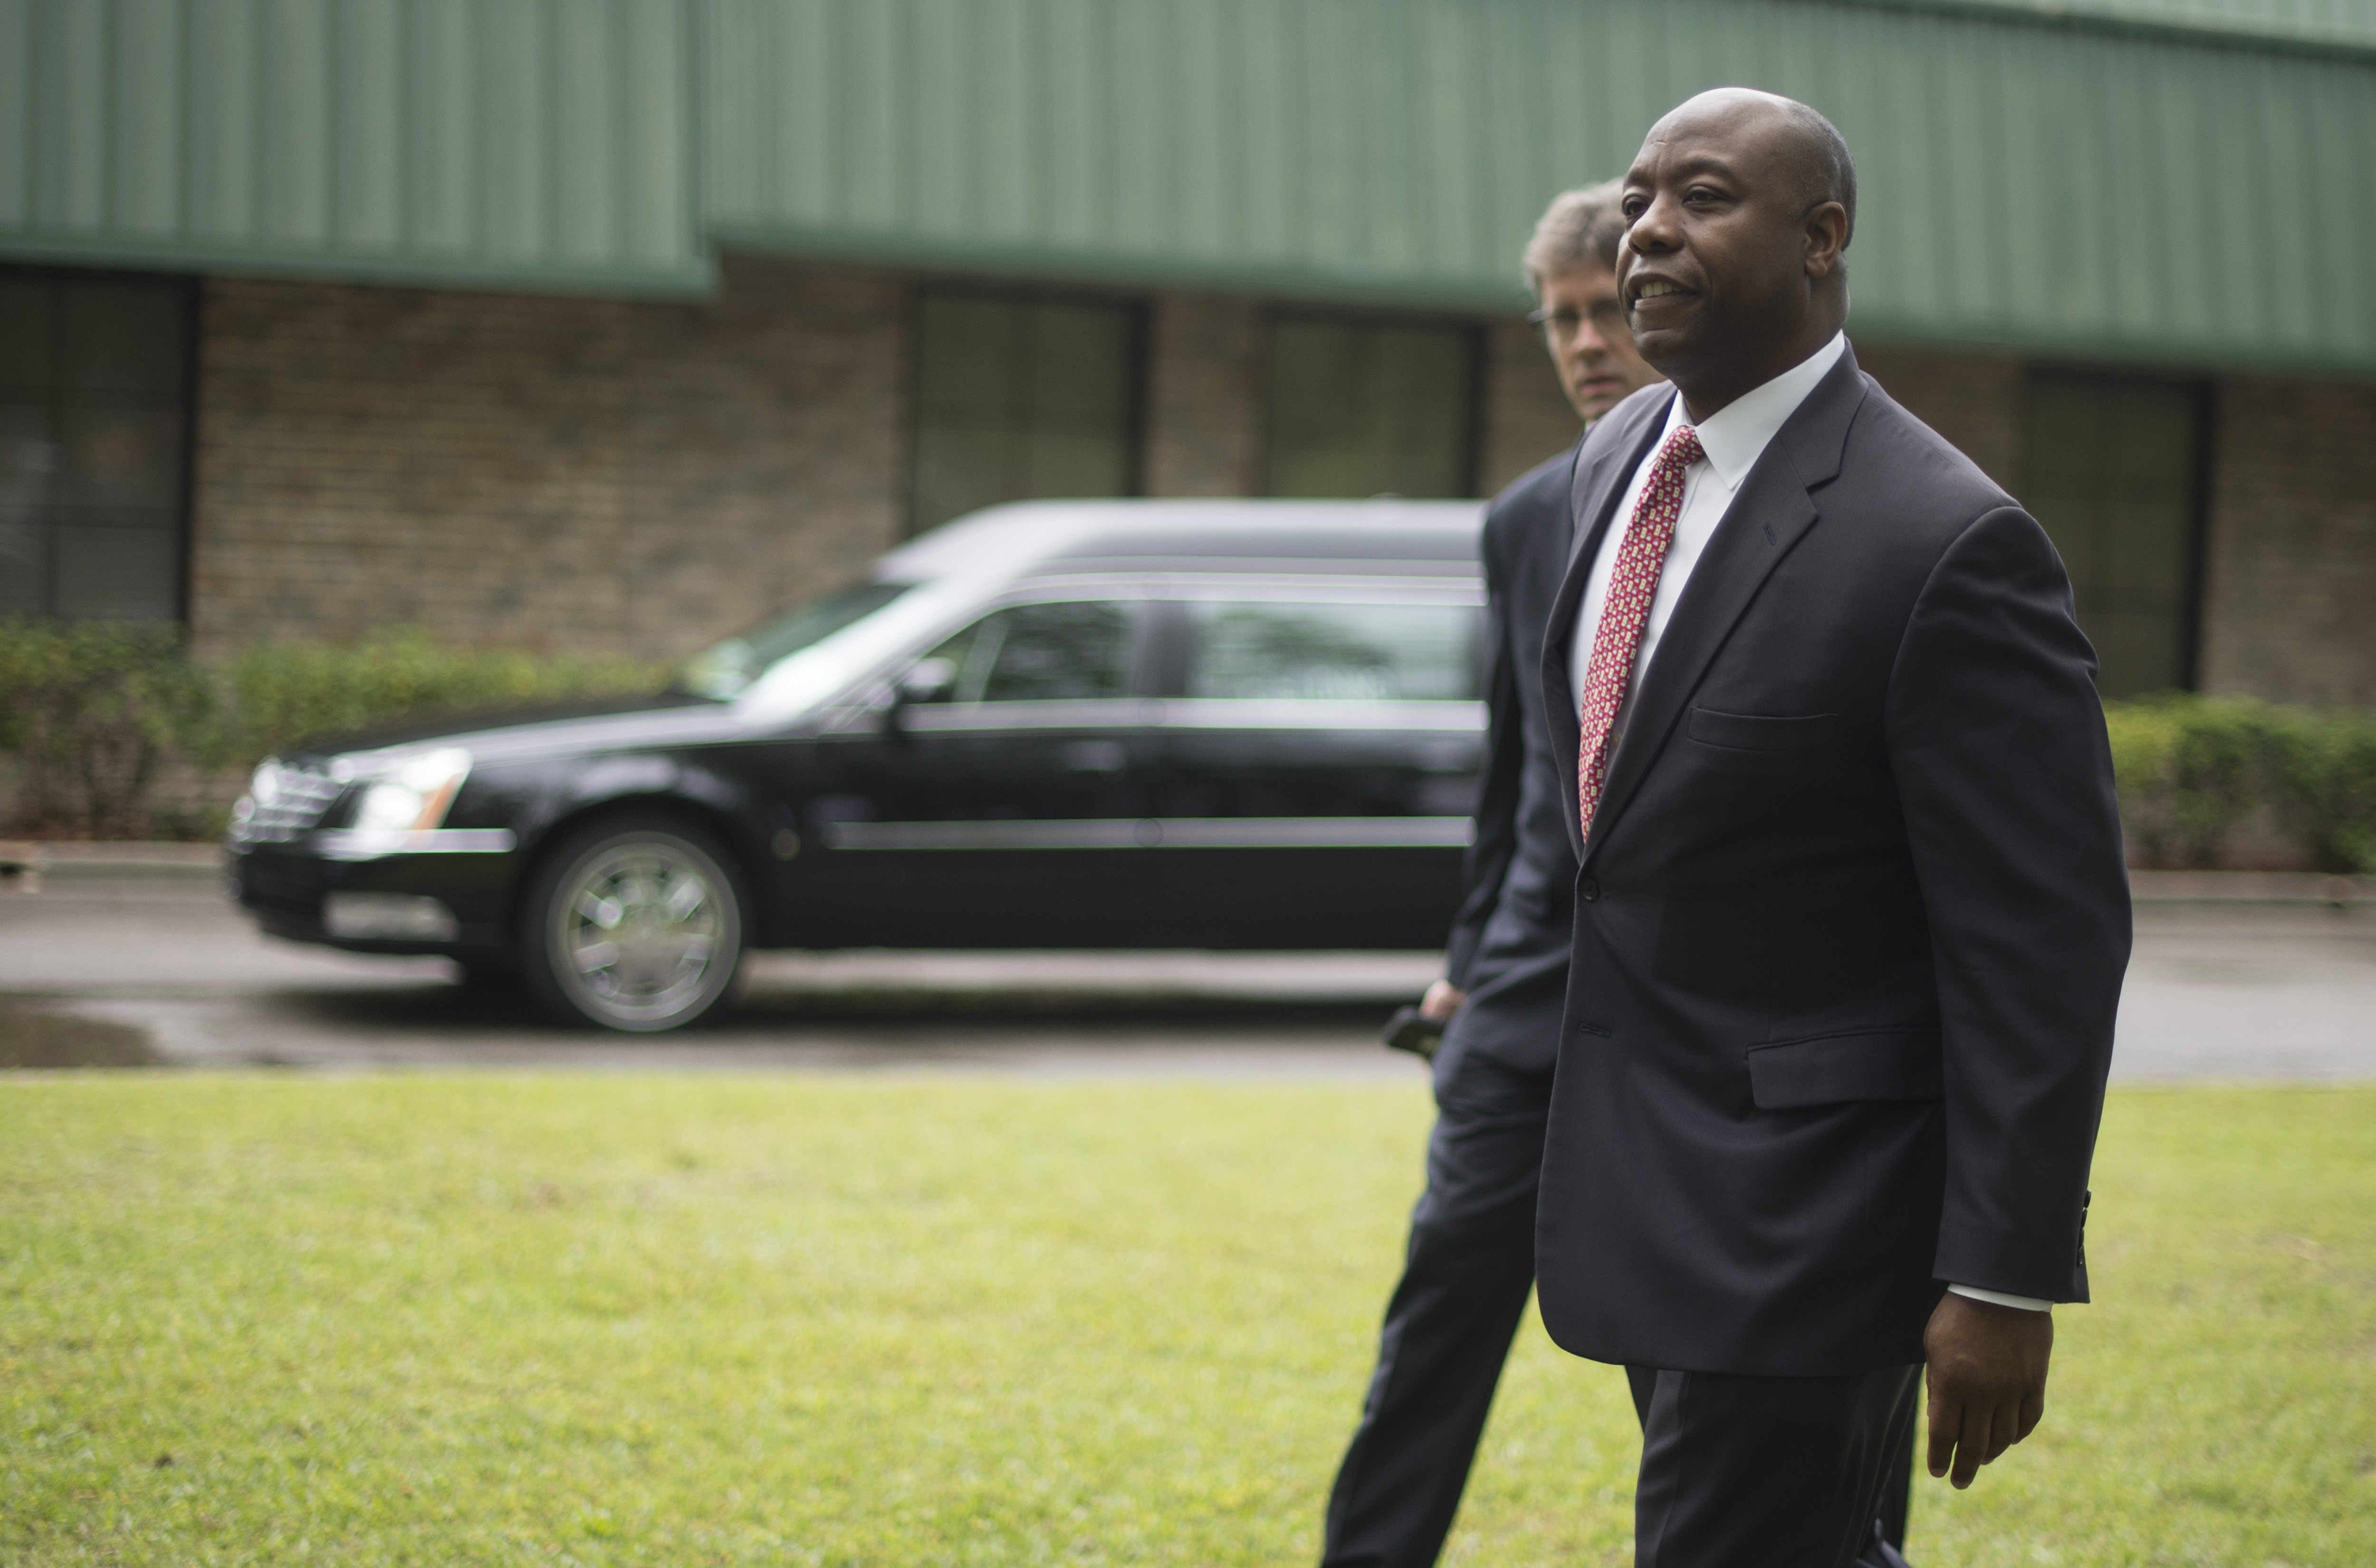 Sen. Tim Scott, R-S.C., was among hundreds of people who attended the funeral of Walter Scott at WORD Ministries Christian Center in Summerville , S.C., on April 11, 2015. Walter Scott, an unarmed Black man, was fatally shot by a white officer in South Carolina as he fled a routine traffic stop.